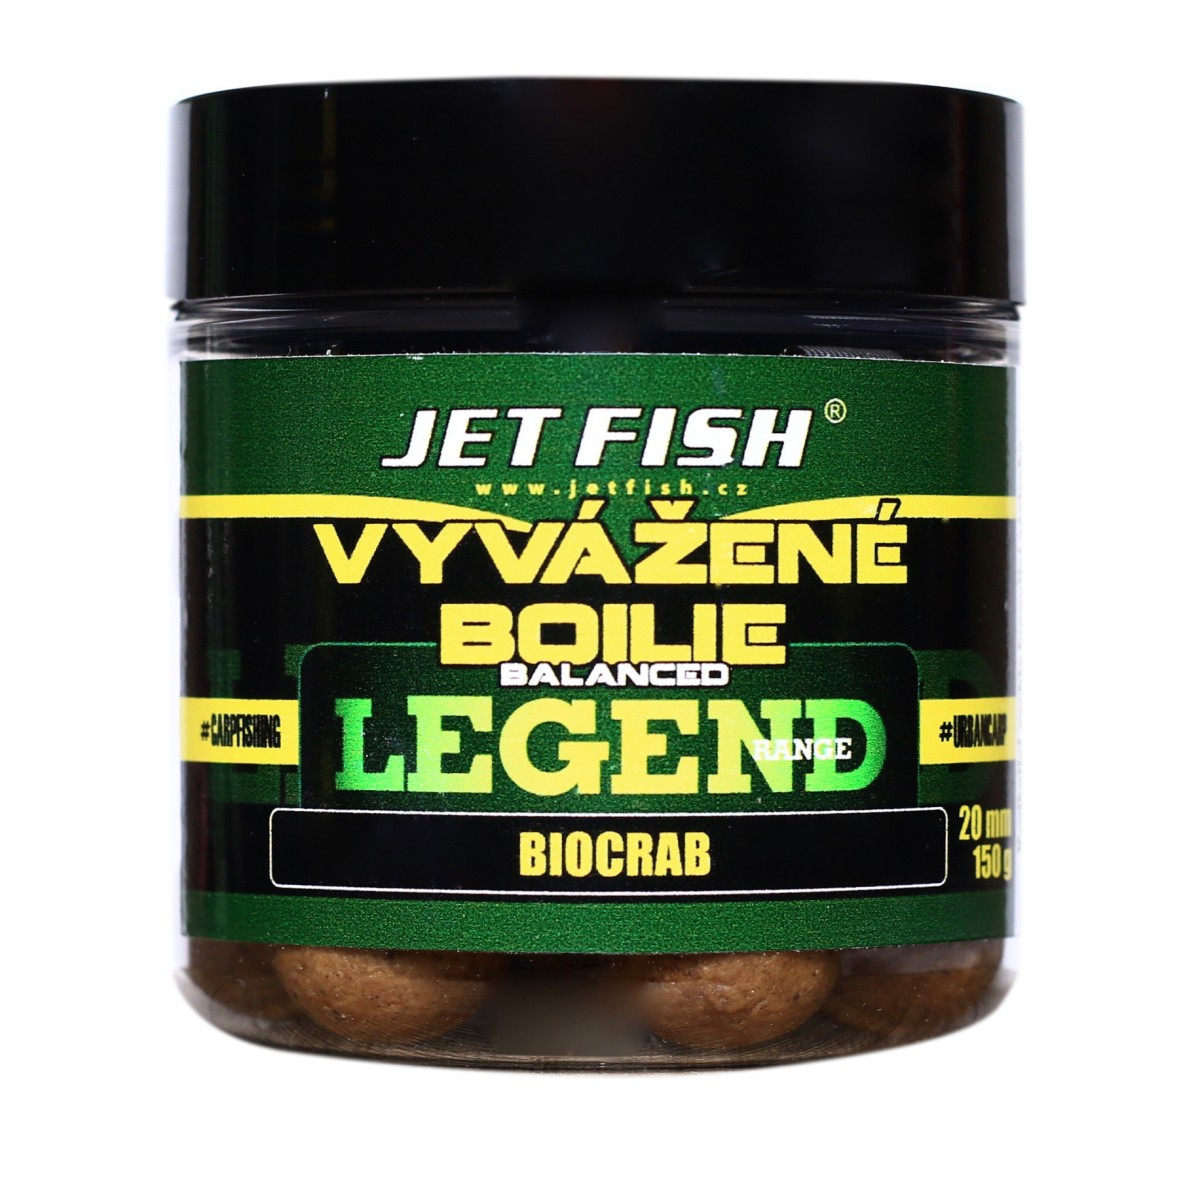 LEGEND Vyvážený boilies KLUB RED-SLIVKA/SCOPEX 20mm 130g